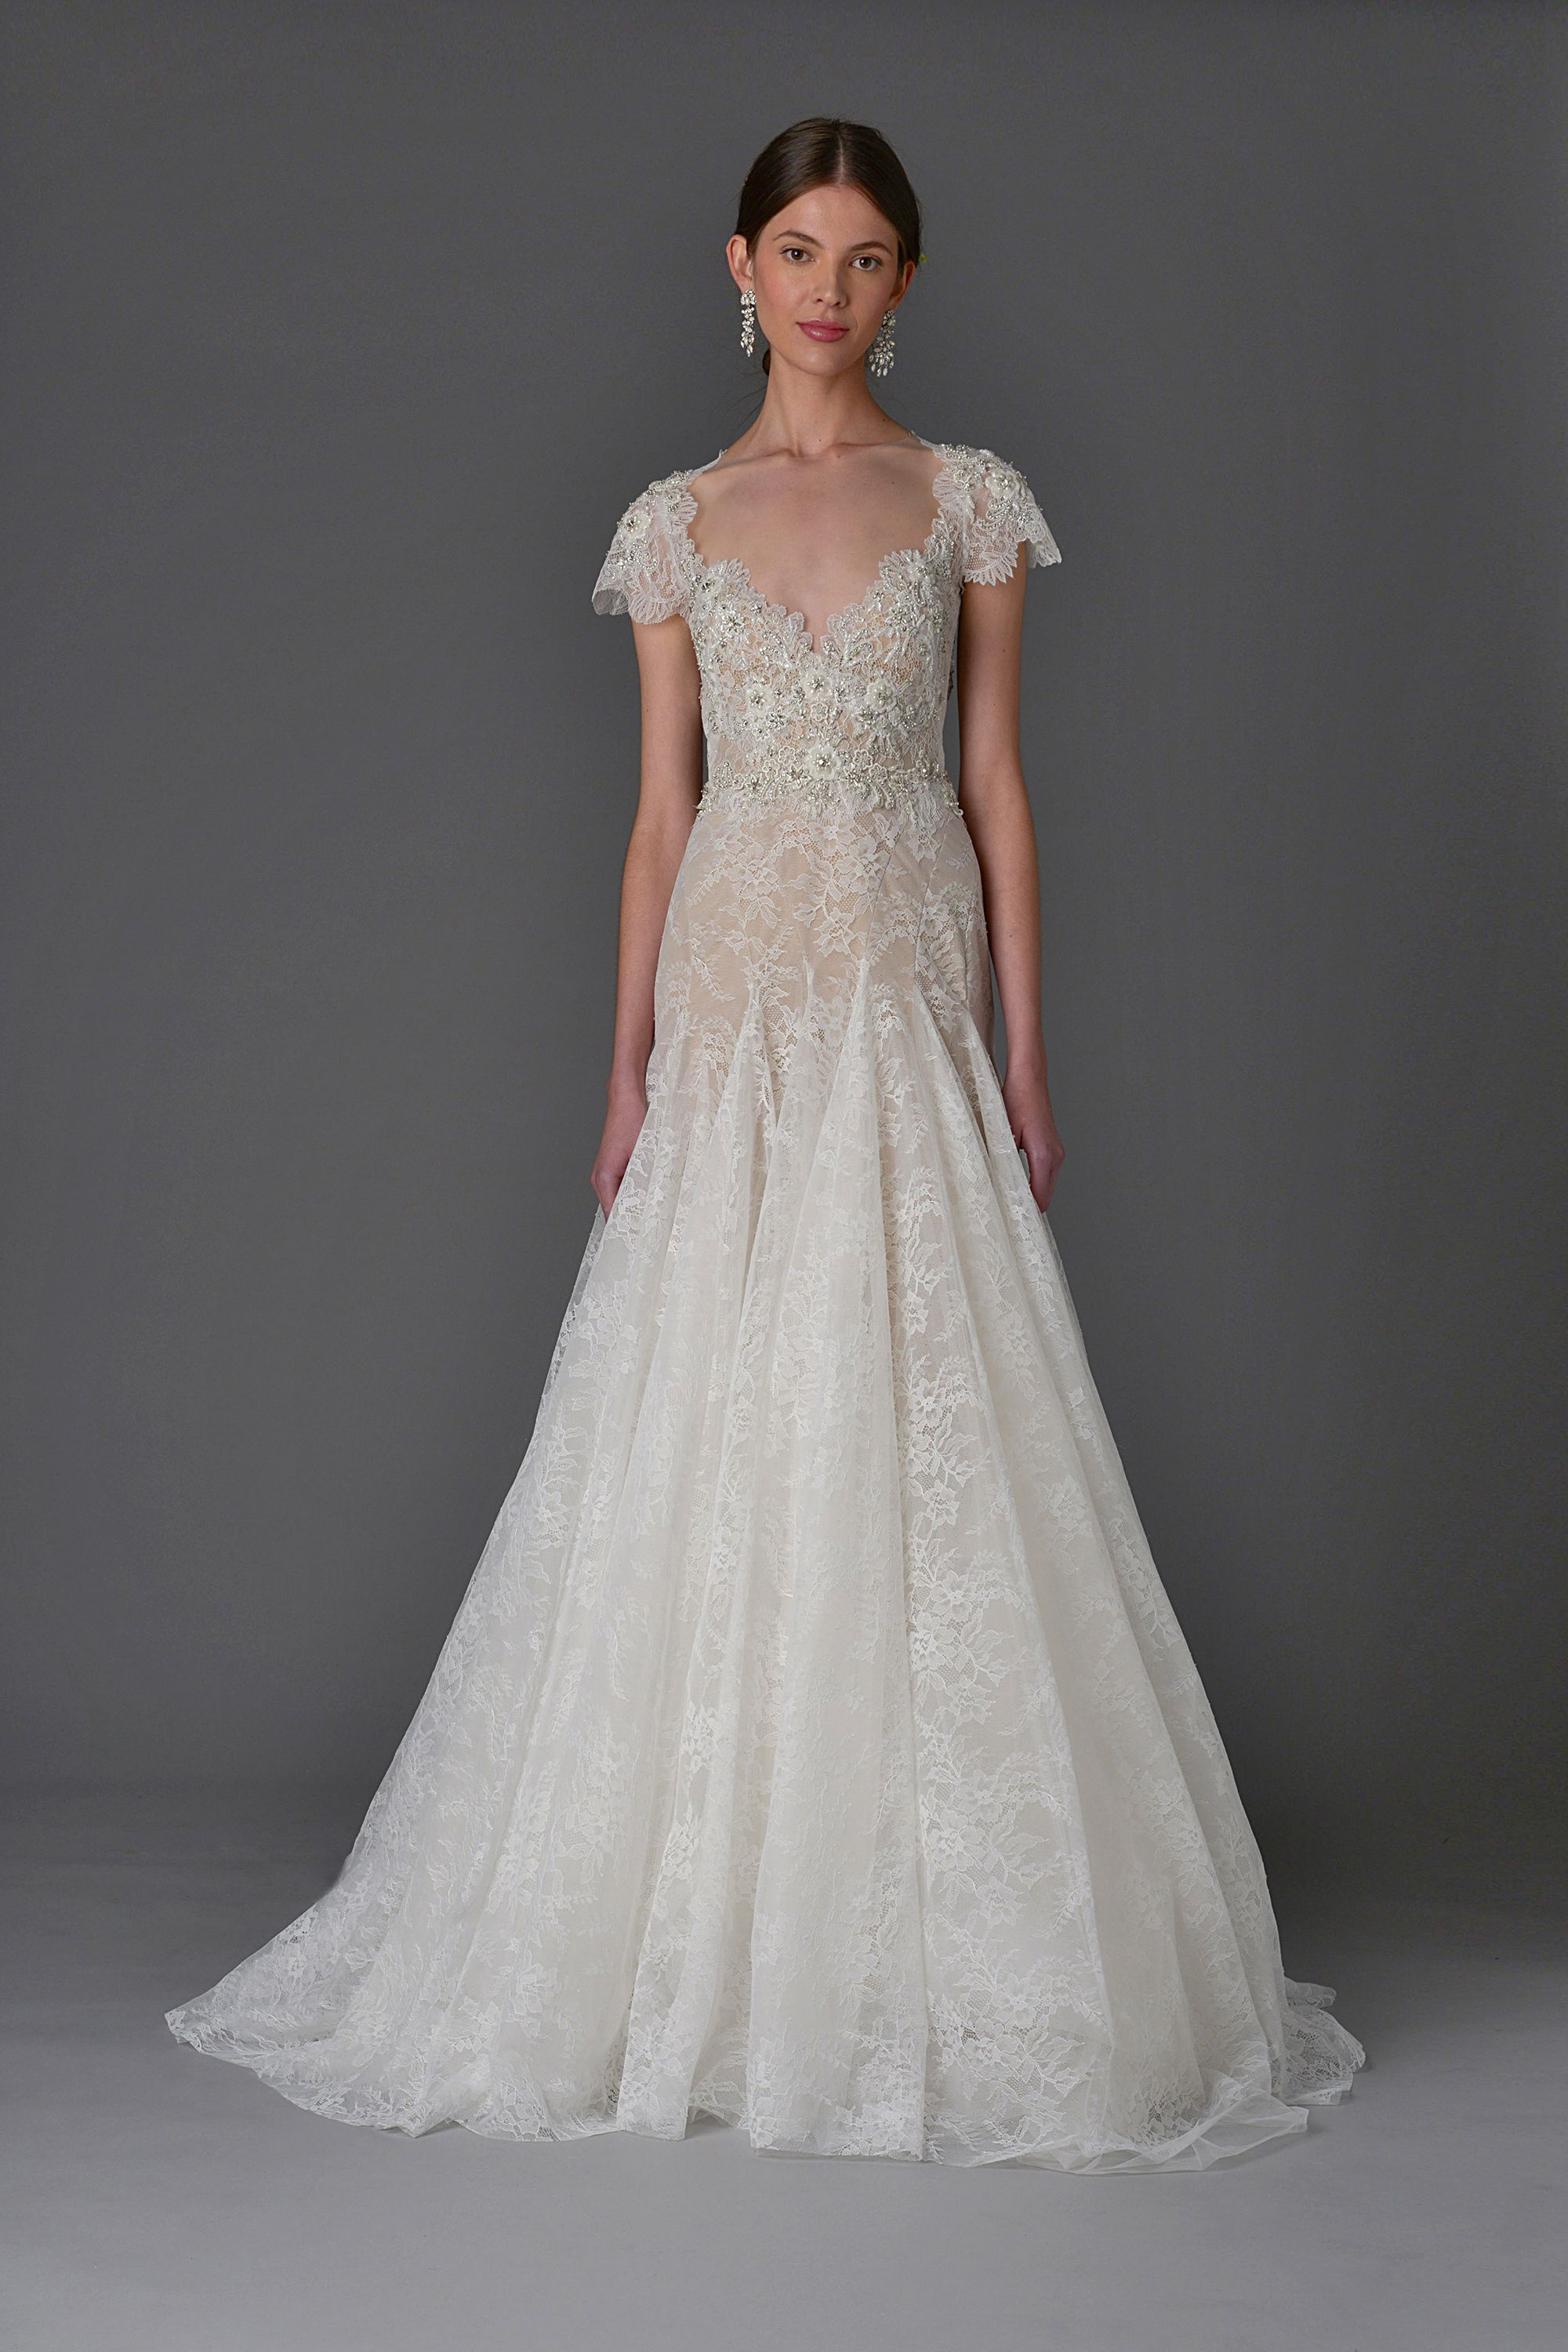 Lively Blake wedding ring pictures, Alfred Black angelo bridesmaid dresses pictures